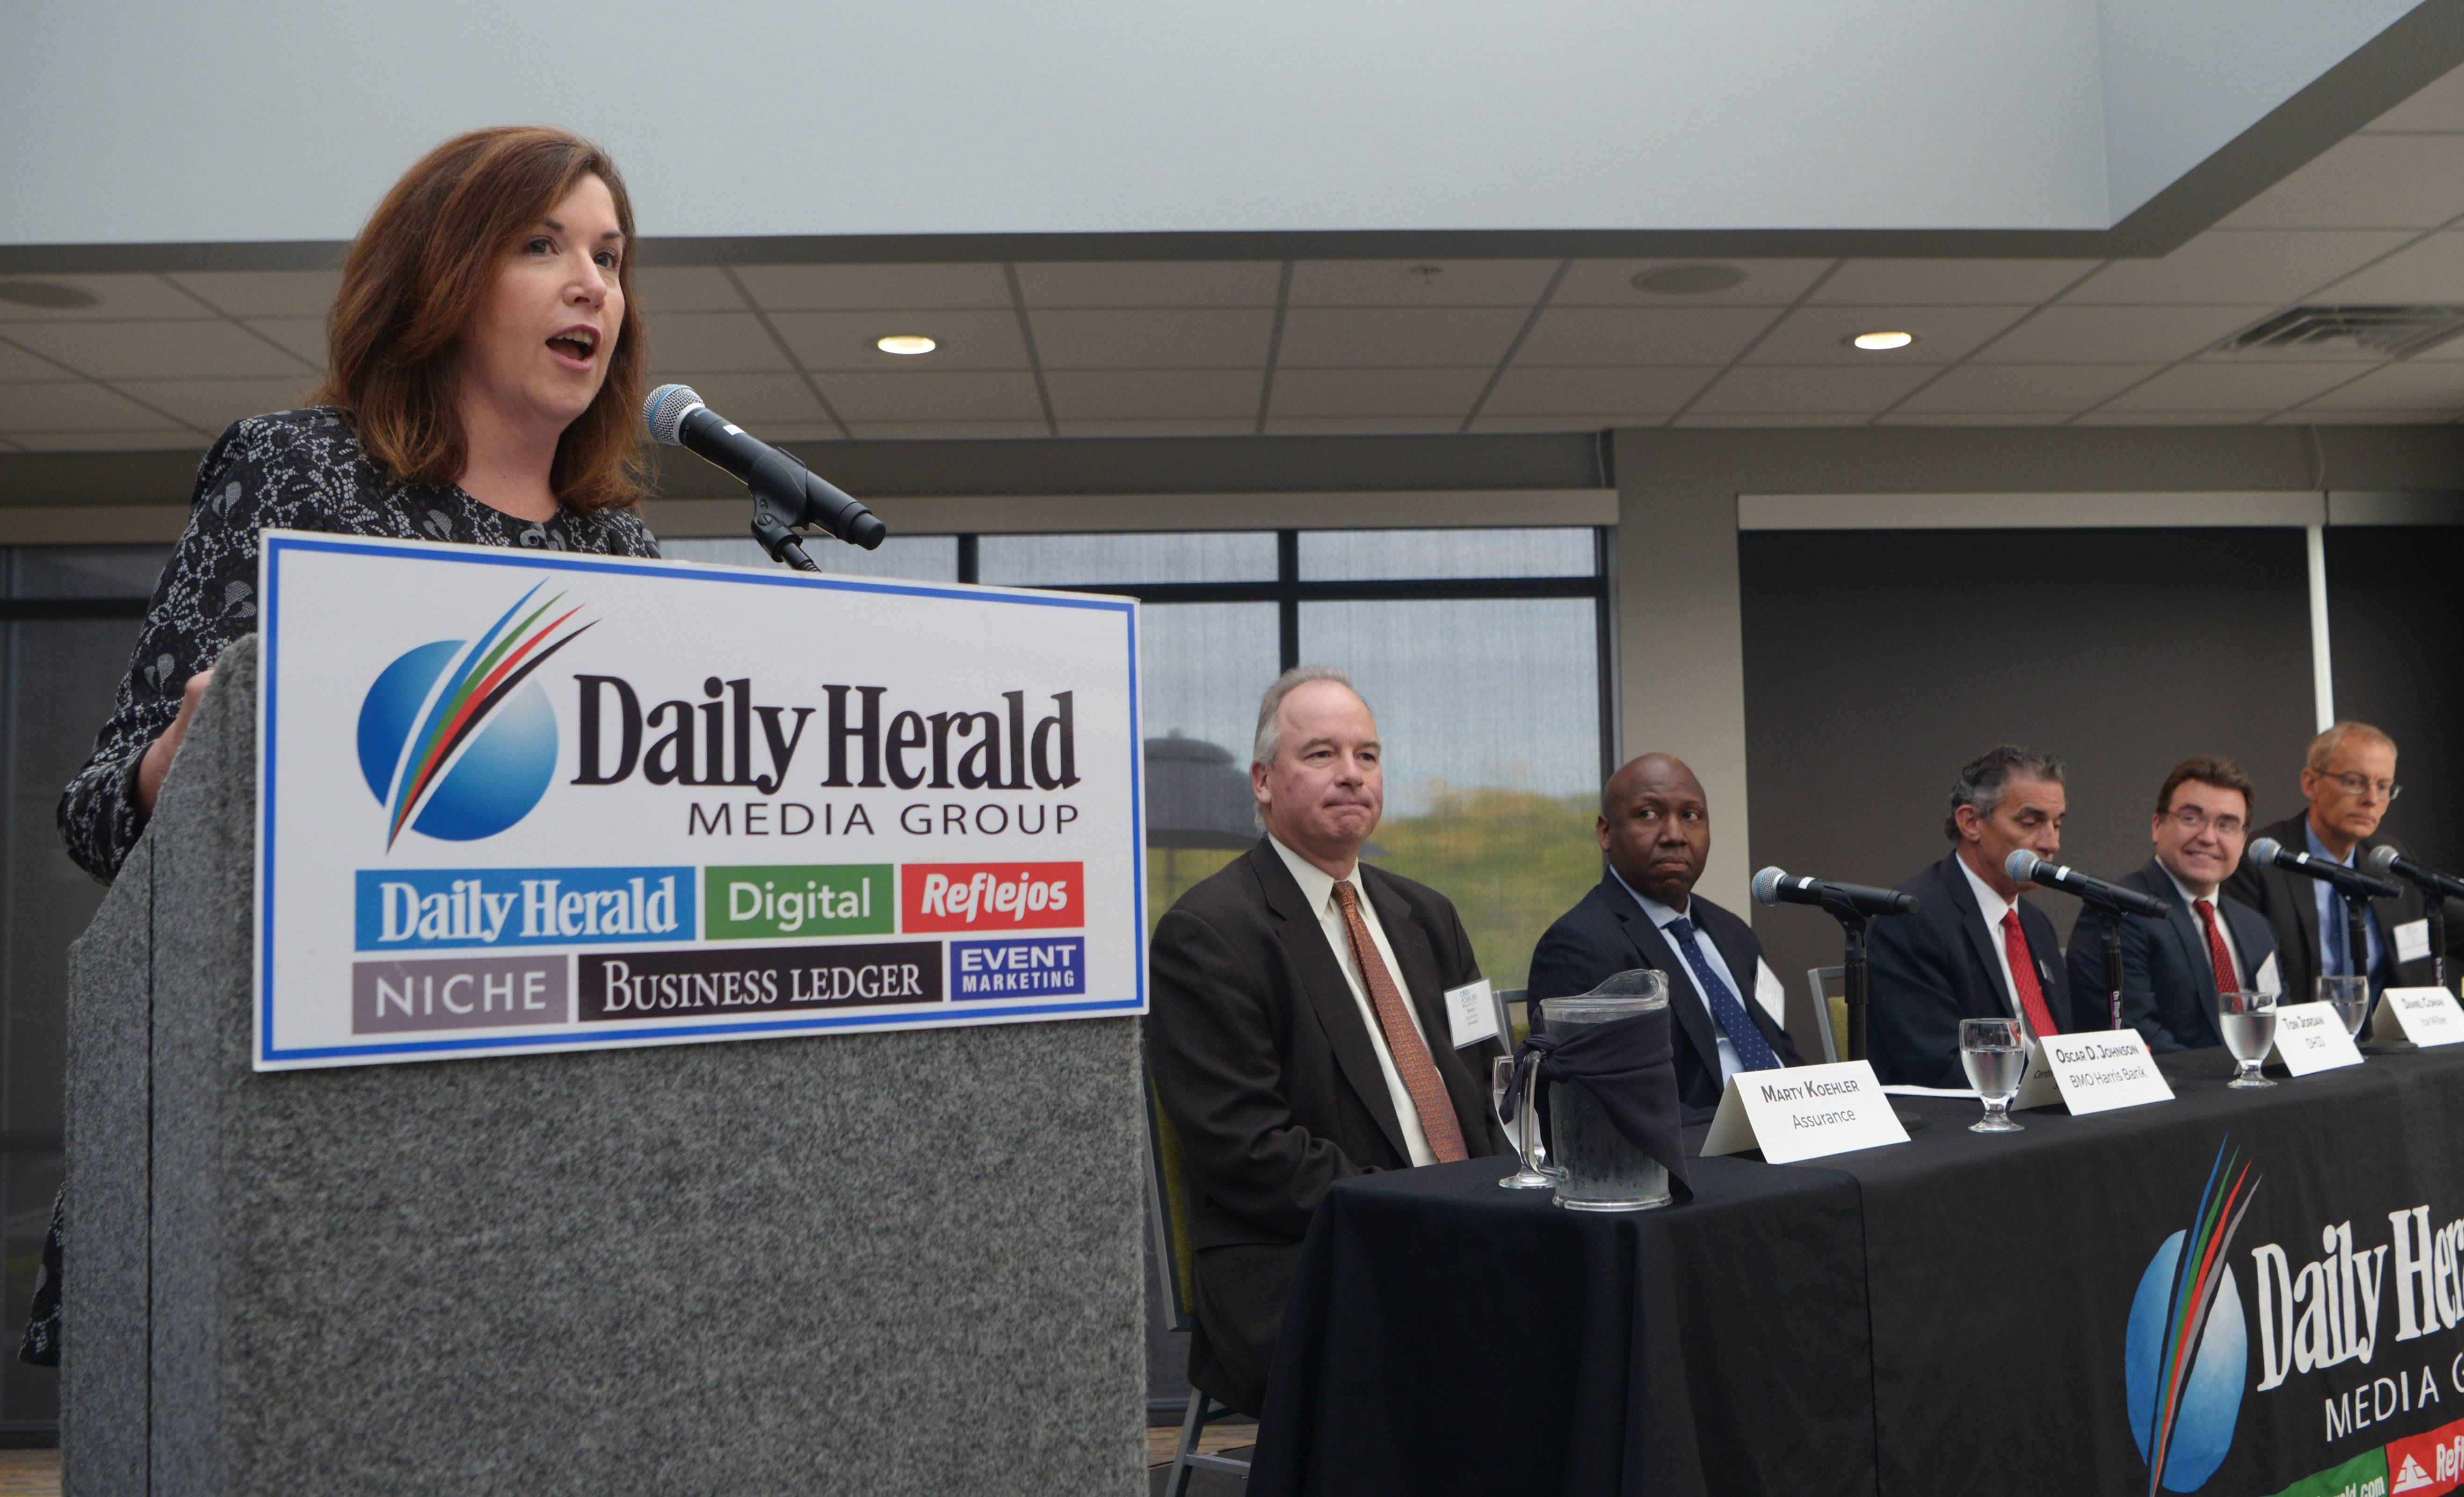 Moderator Mary Lynn Faoumi introduces panelists during the 2017 CEO Forum, hosted by the Daily Herald and Daily Herald Business Ledger at the Fairfield Inn in Schaumburg Thursday.